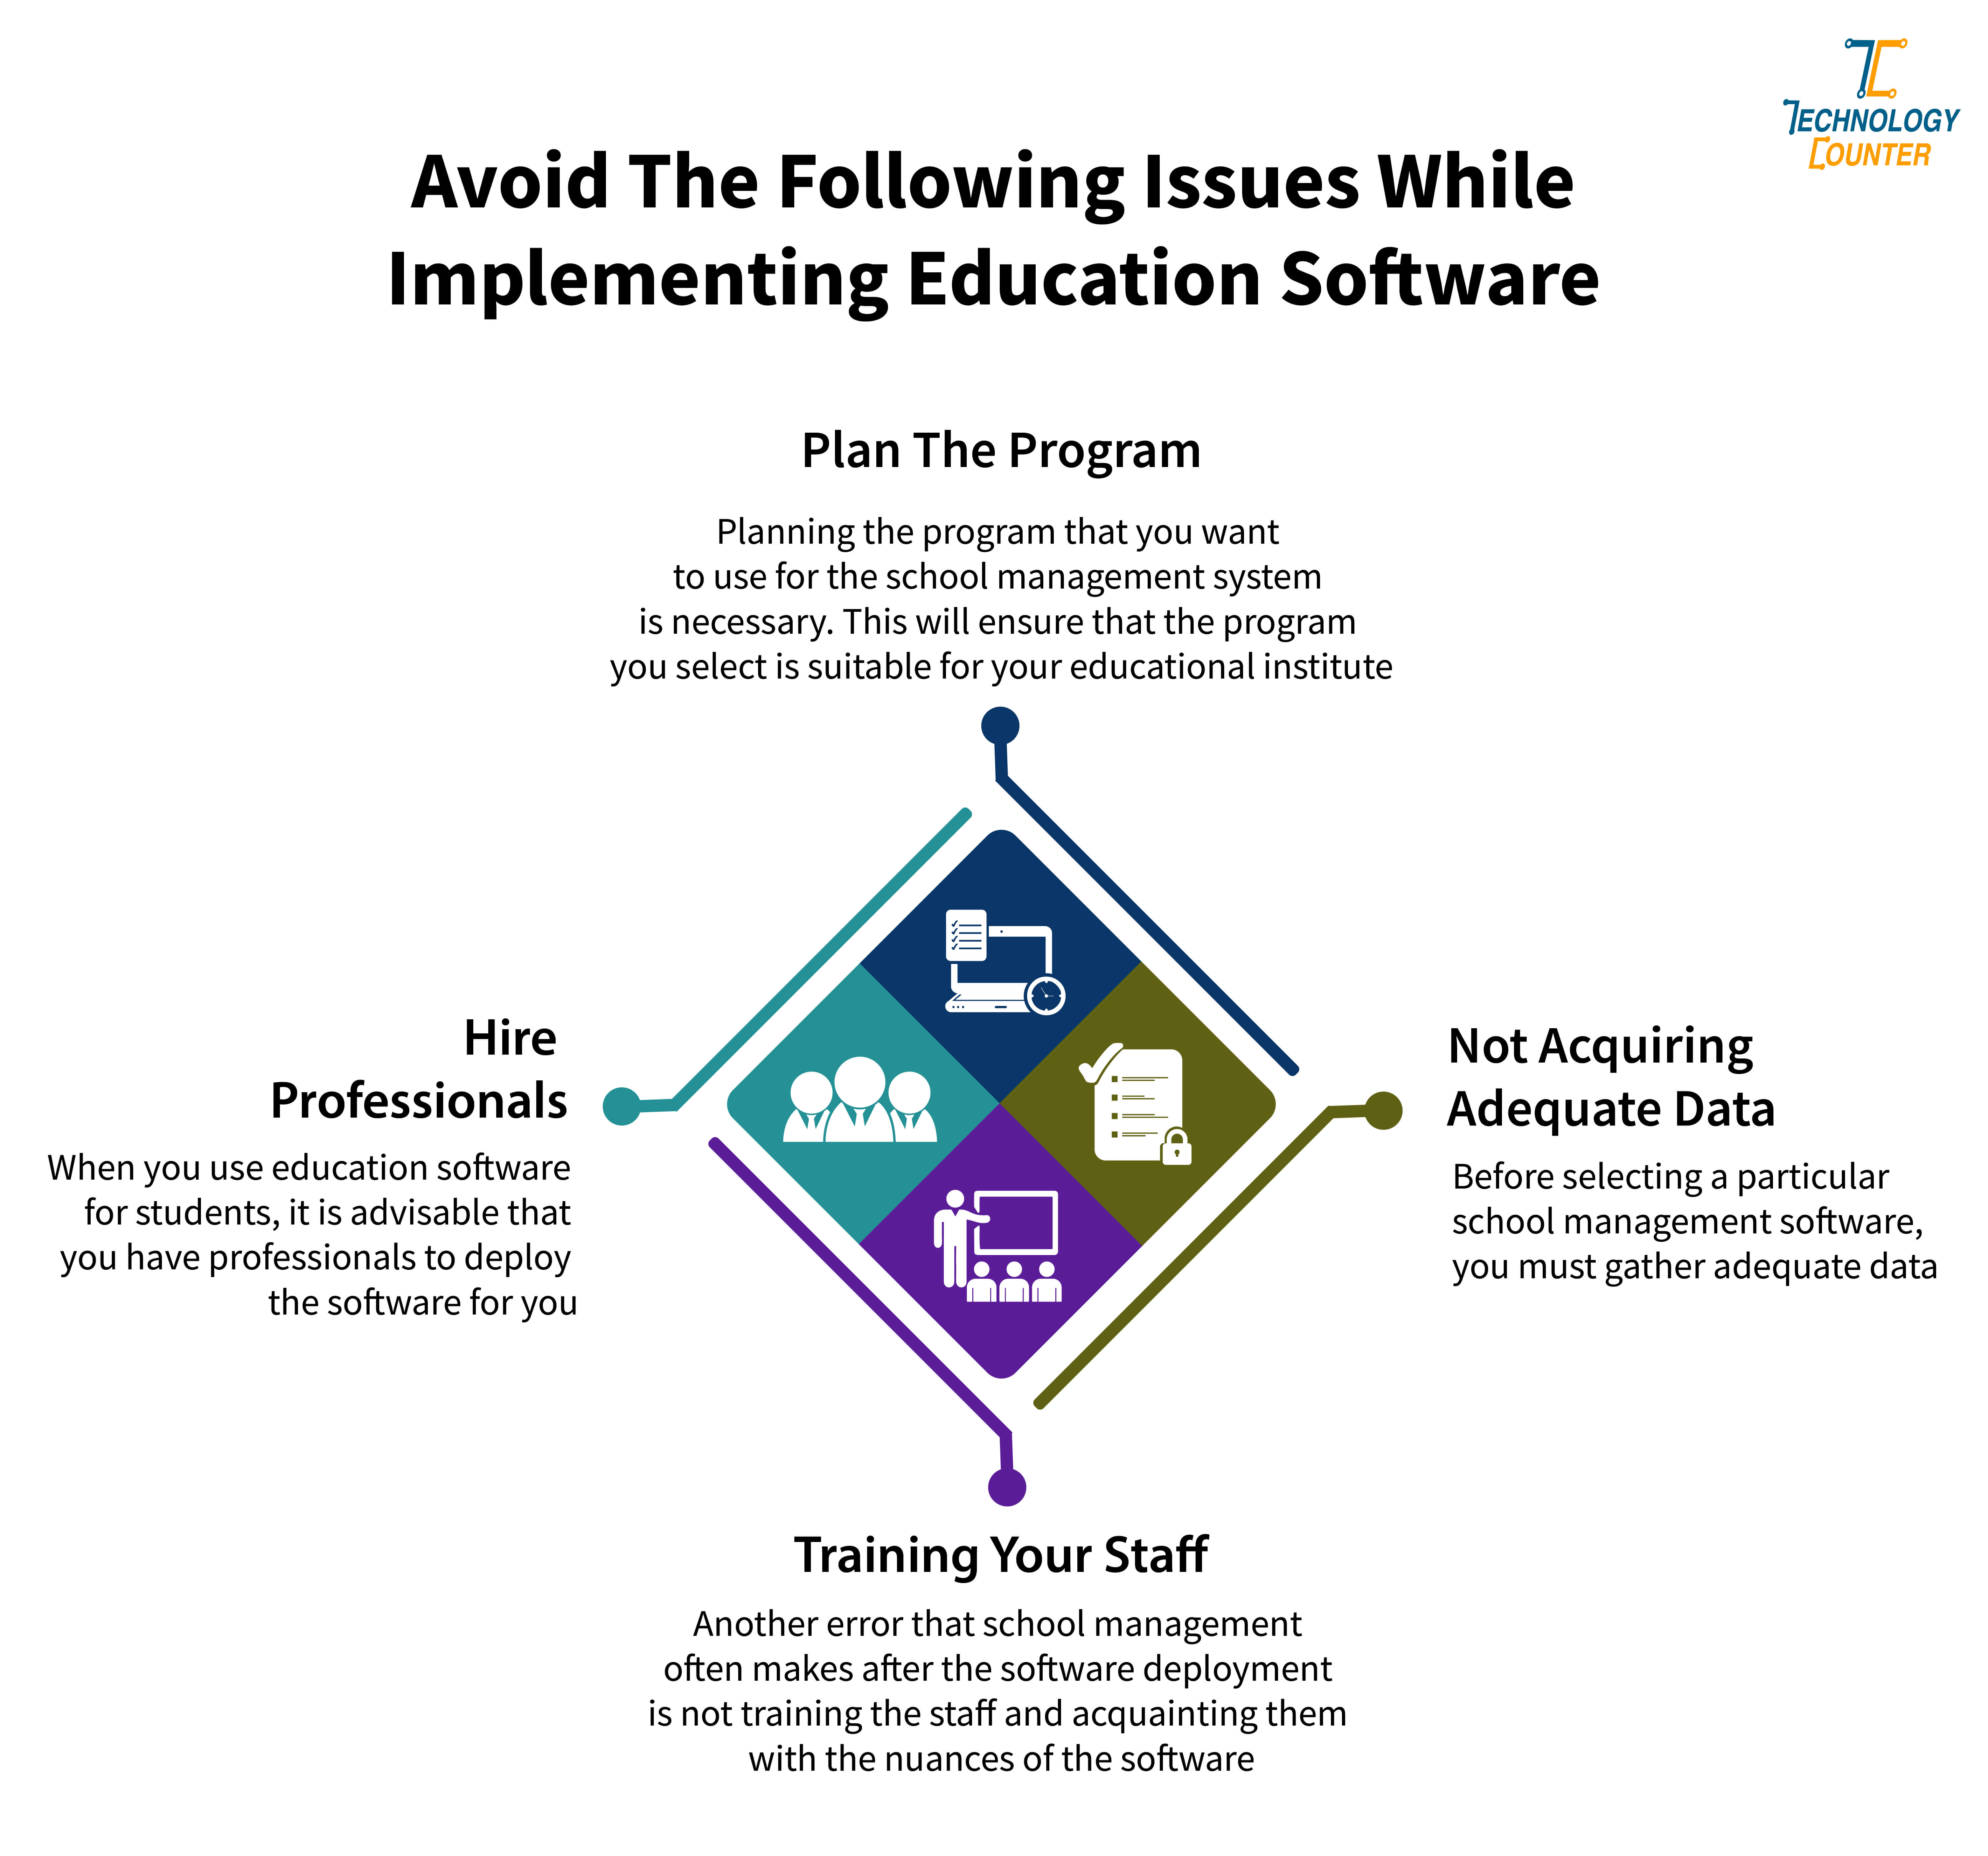 Avoid the following issues while Implementing Education Software